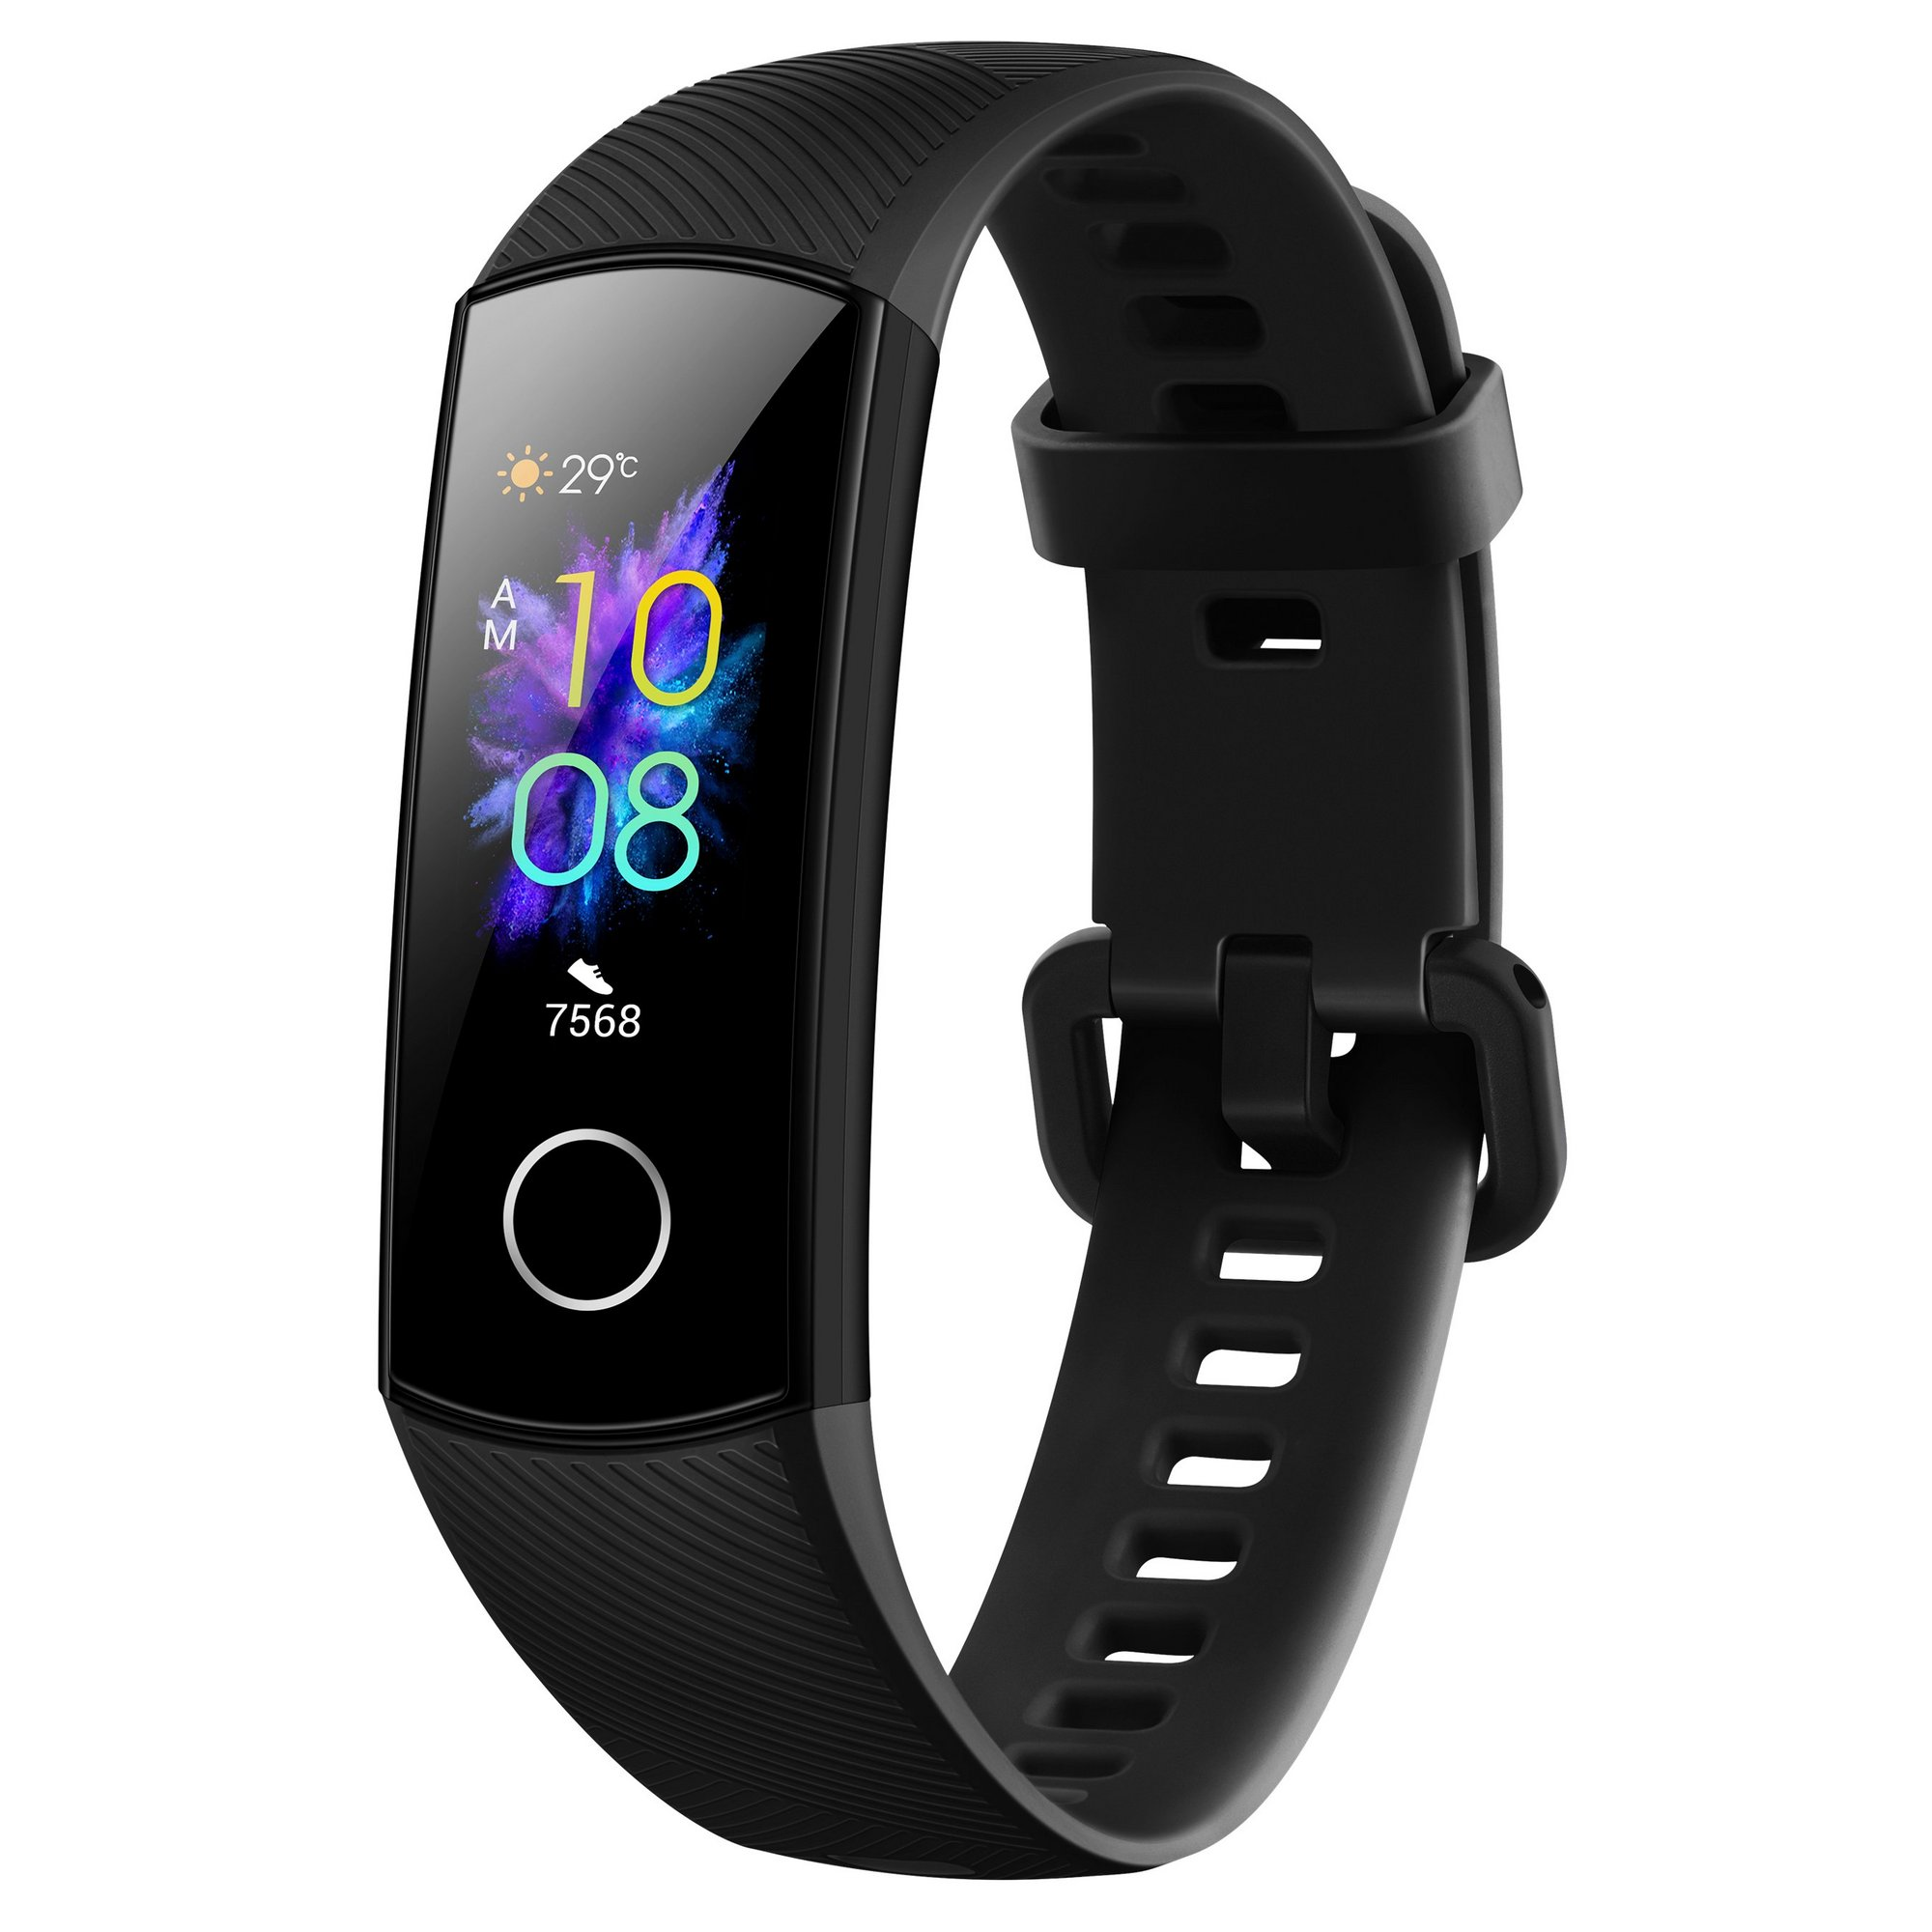 Image of Honor Band 5 Fitness Tracker Smart Watch